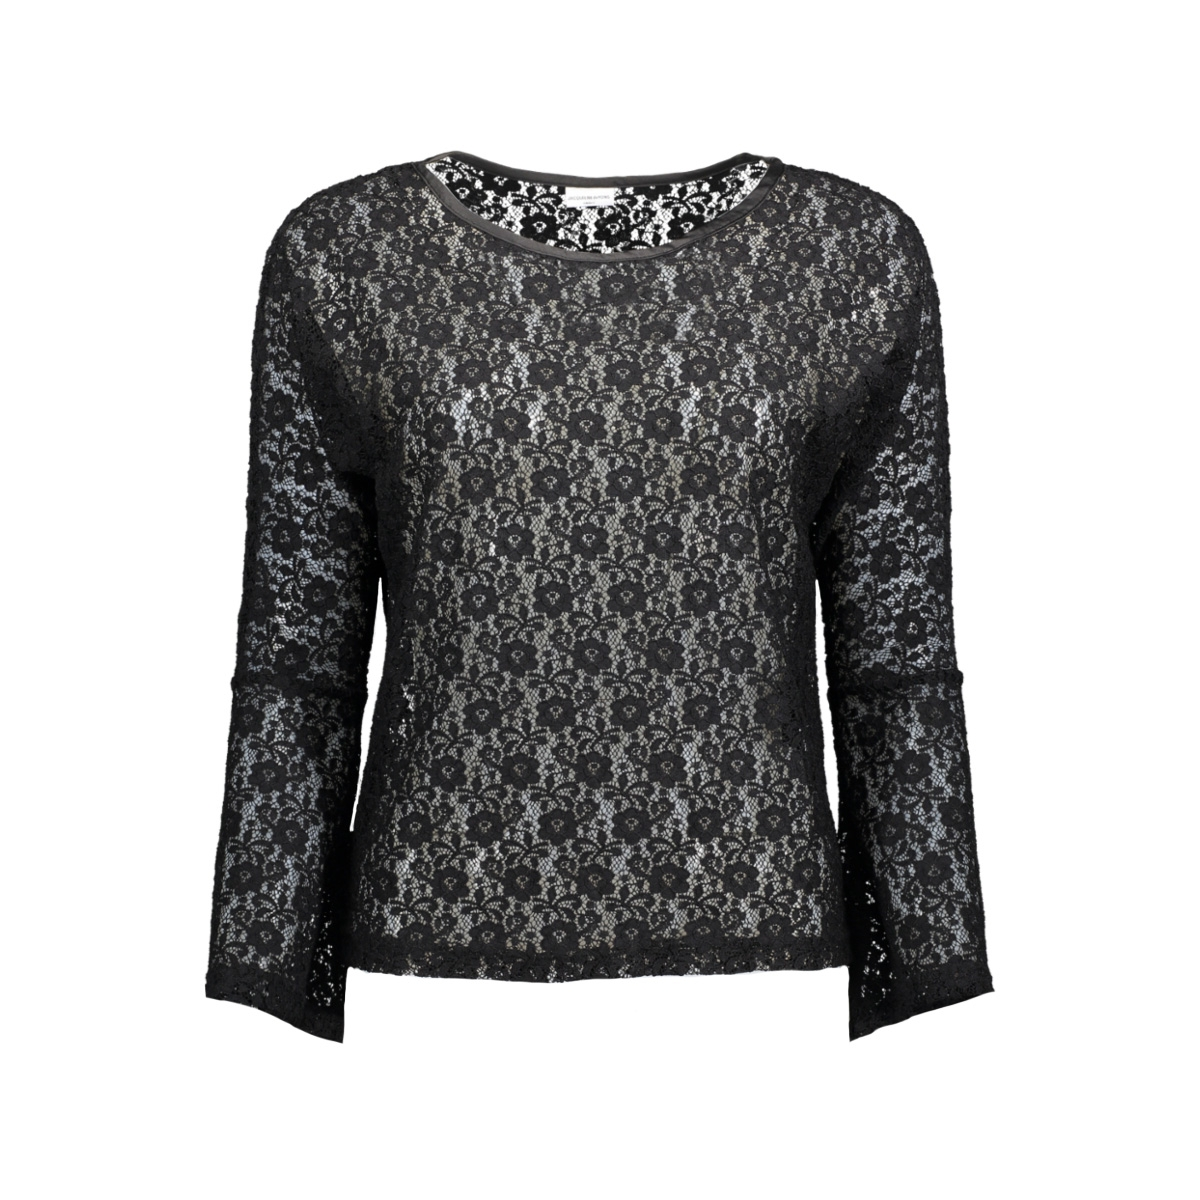 jdyeverly l/s top jrs 15138529 jacqueline de yong t-shirt black